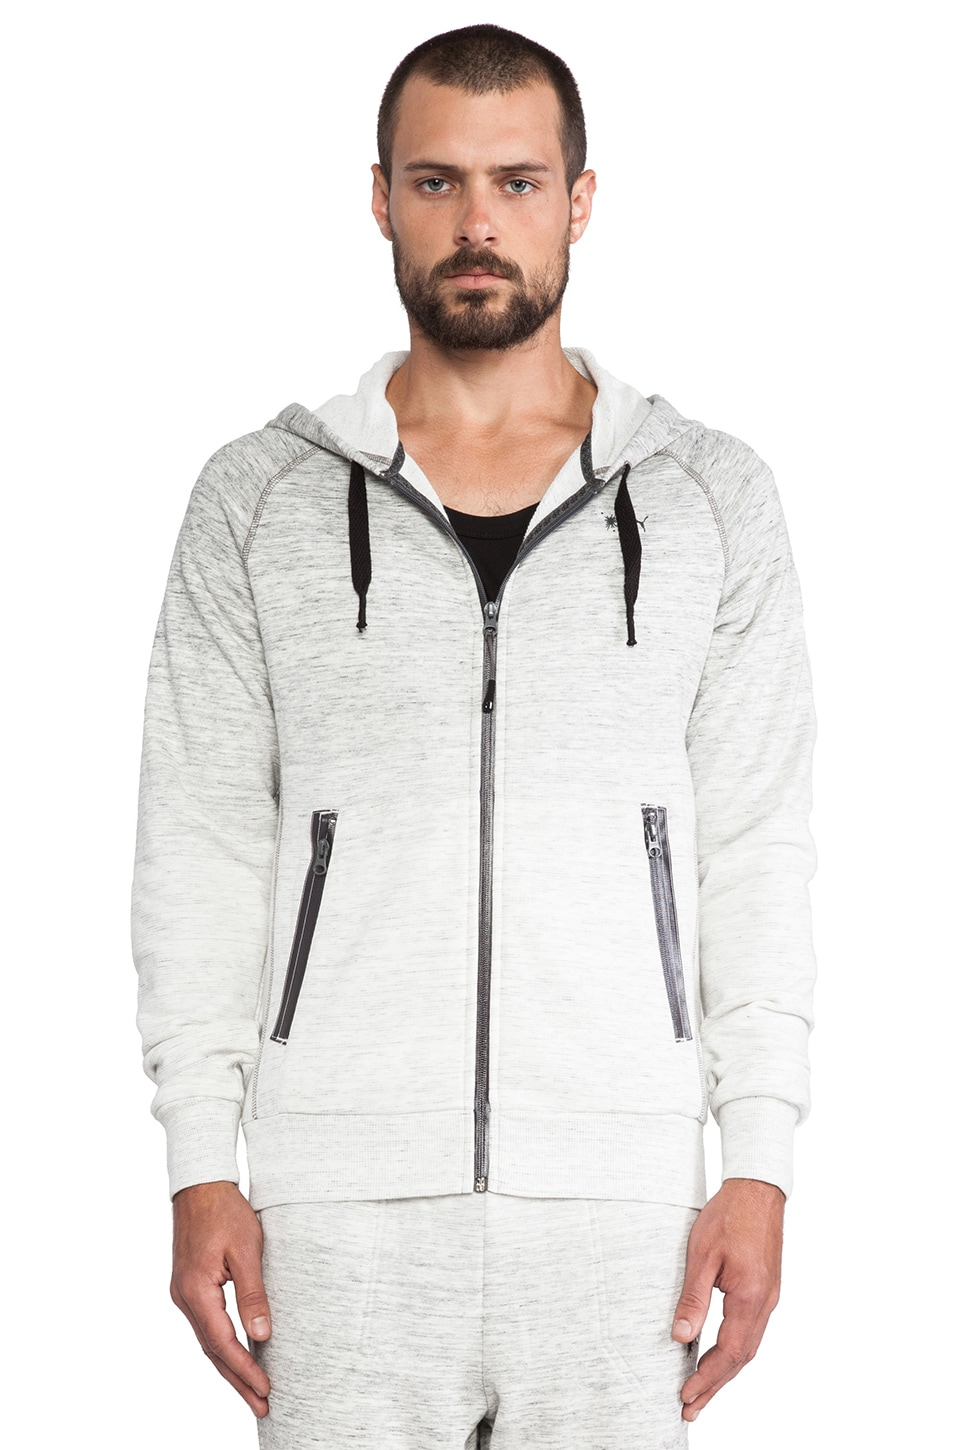 Puma by Mihara Sweater Hoody in Medium Gray Heather